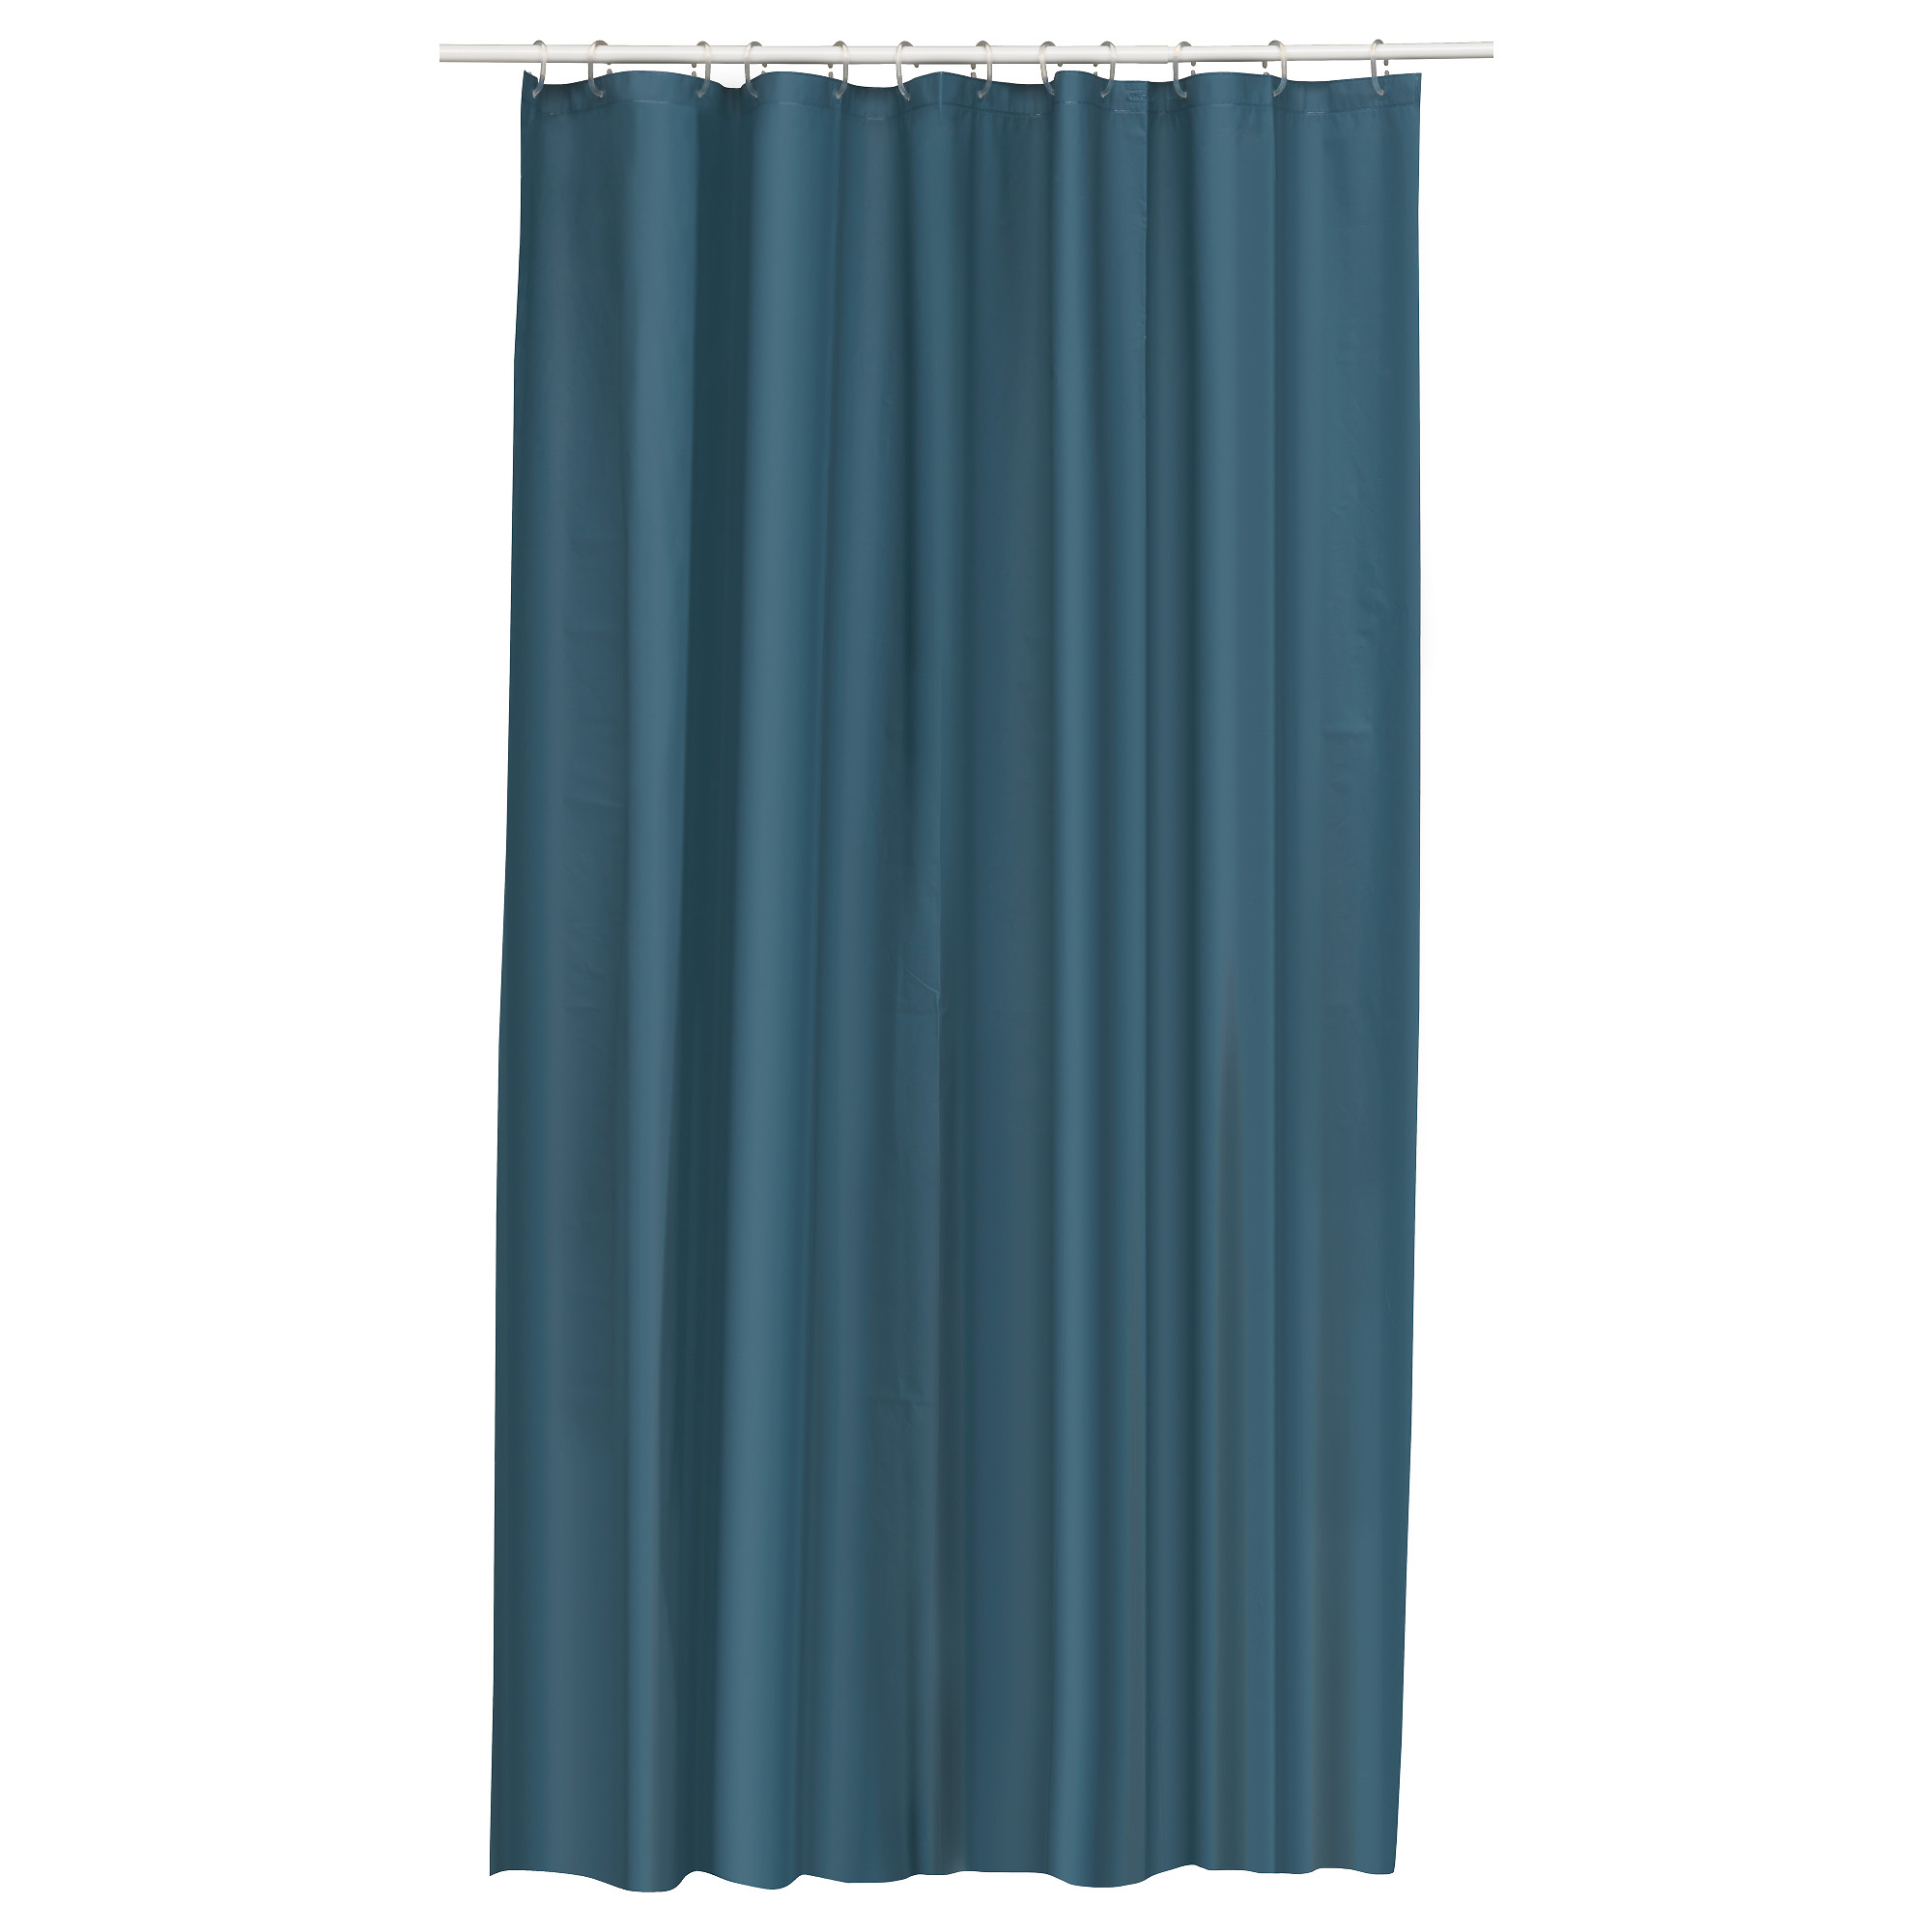 ikea eggegrund shower curtain can be easily cut to the desired length. DQUPETJ